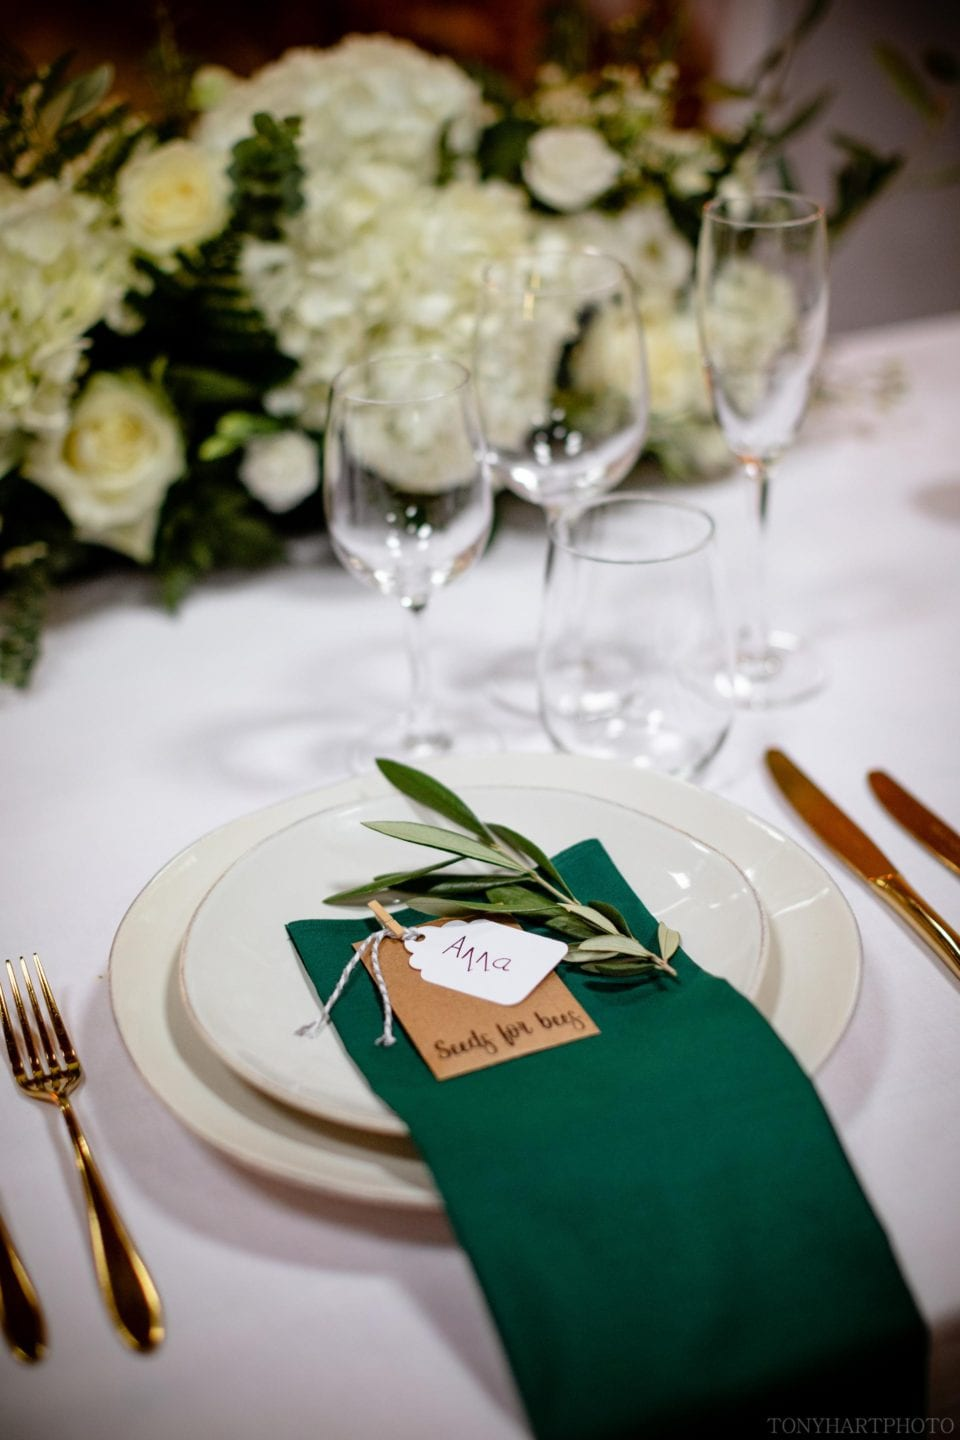 Place setting detail featuring green napkins and gold cutlery